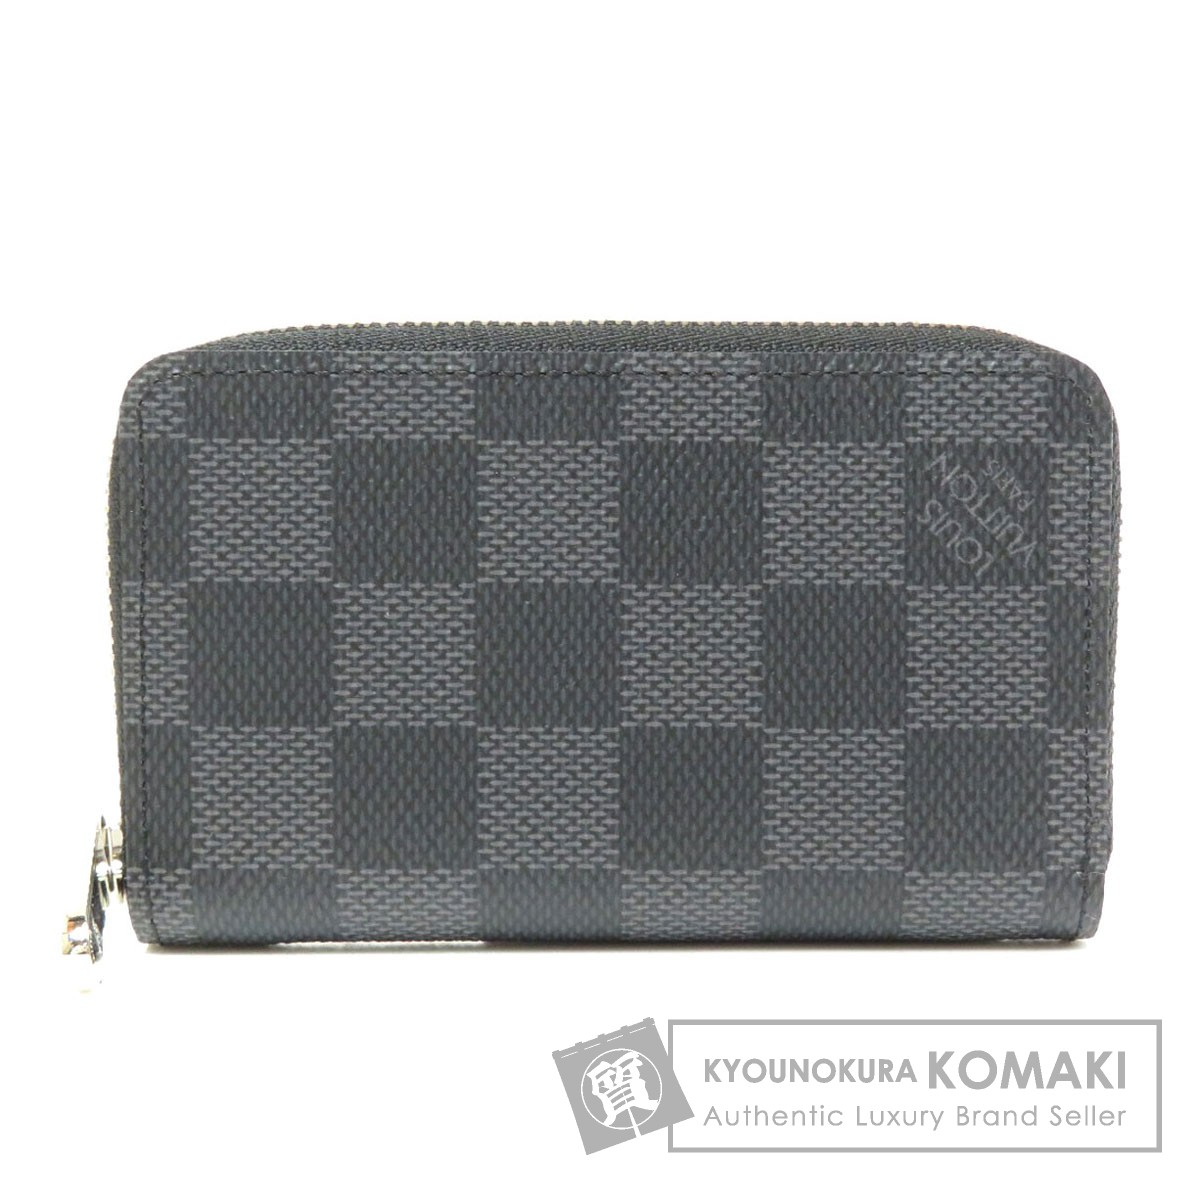 8bab33ffb533 LOUIS VUITTON ルイヴィトン N63076 ジッピーコインパース コインケース ルイヴィトン N63076 ジッピーコインパース